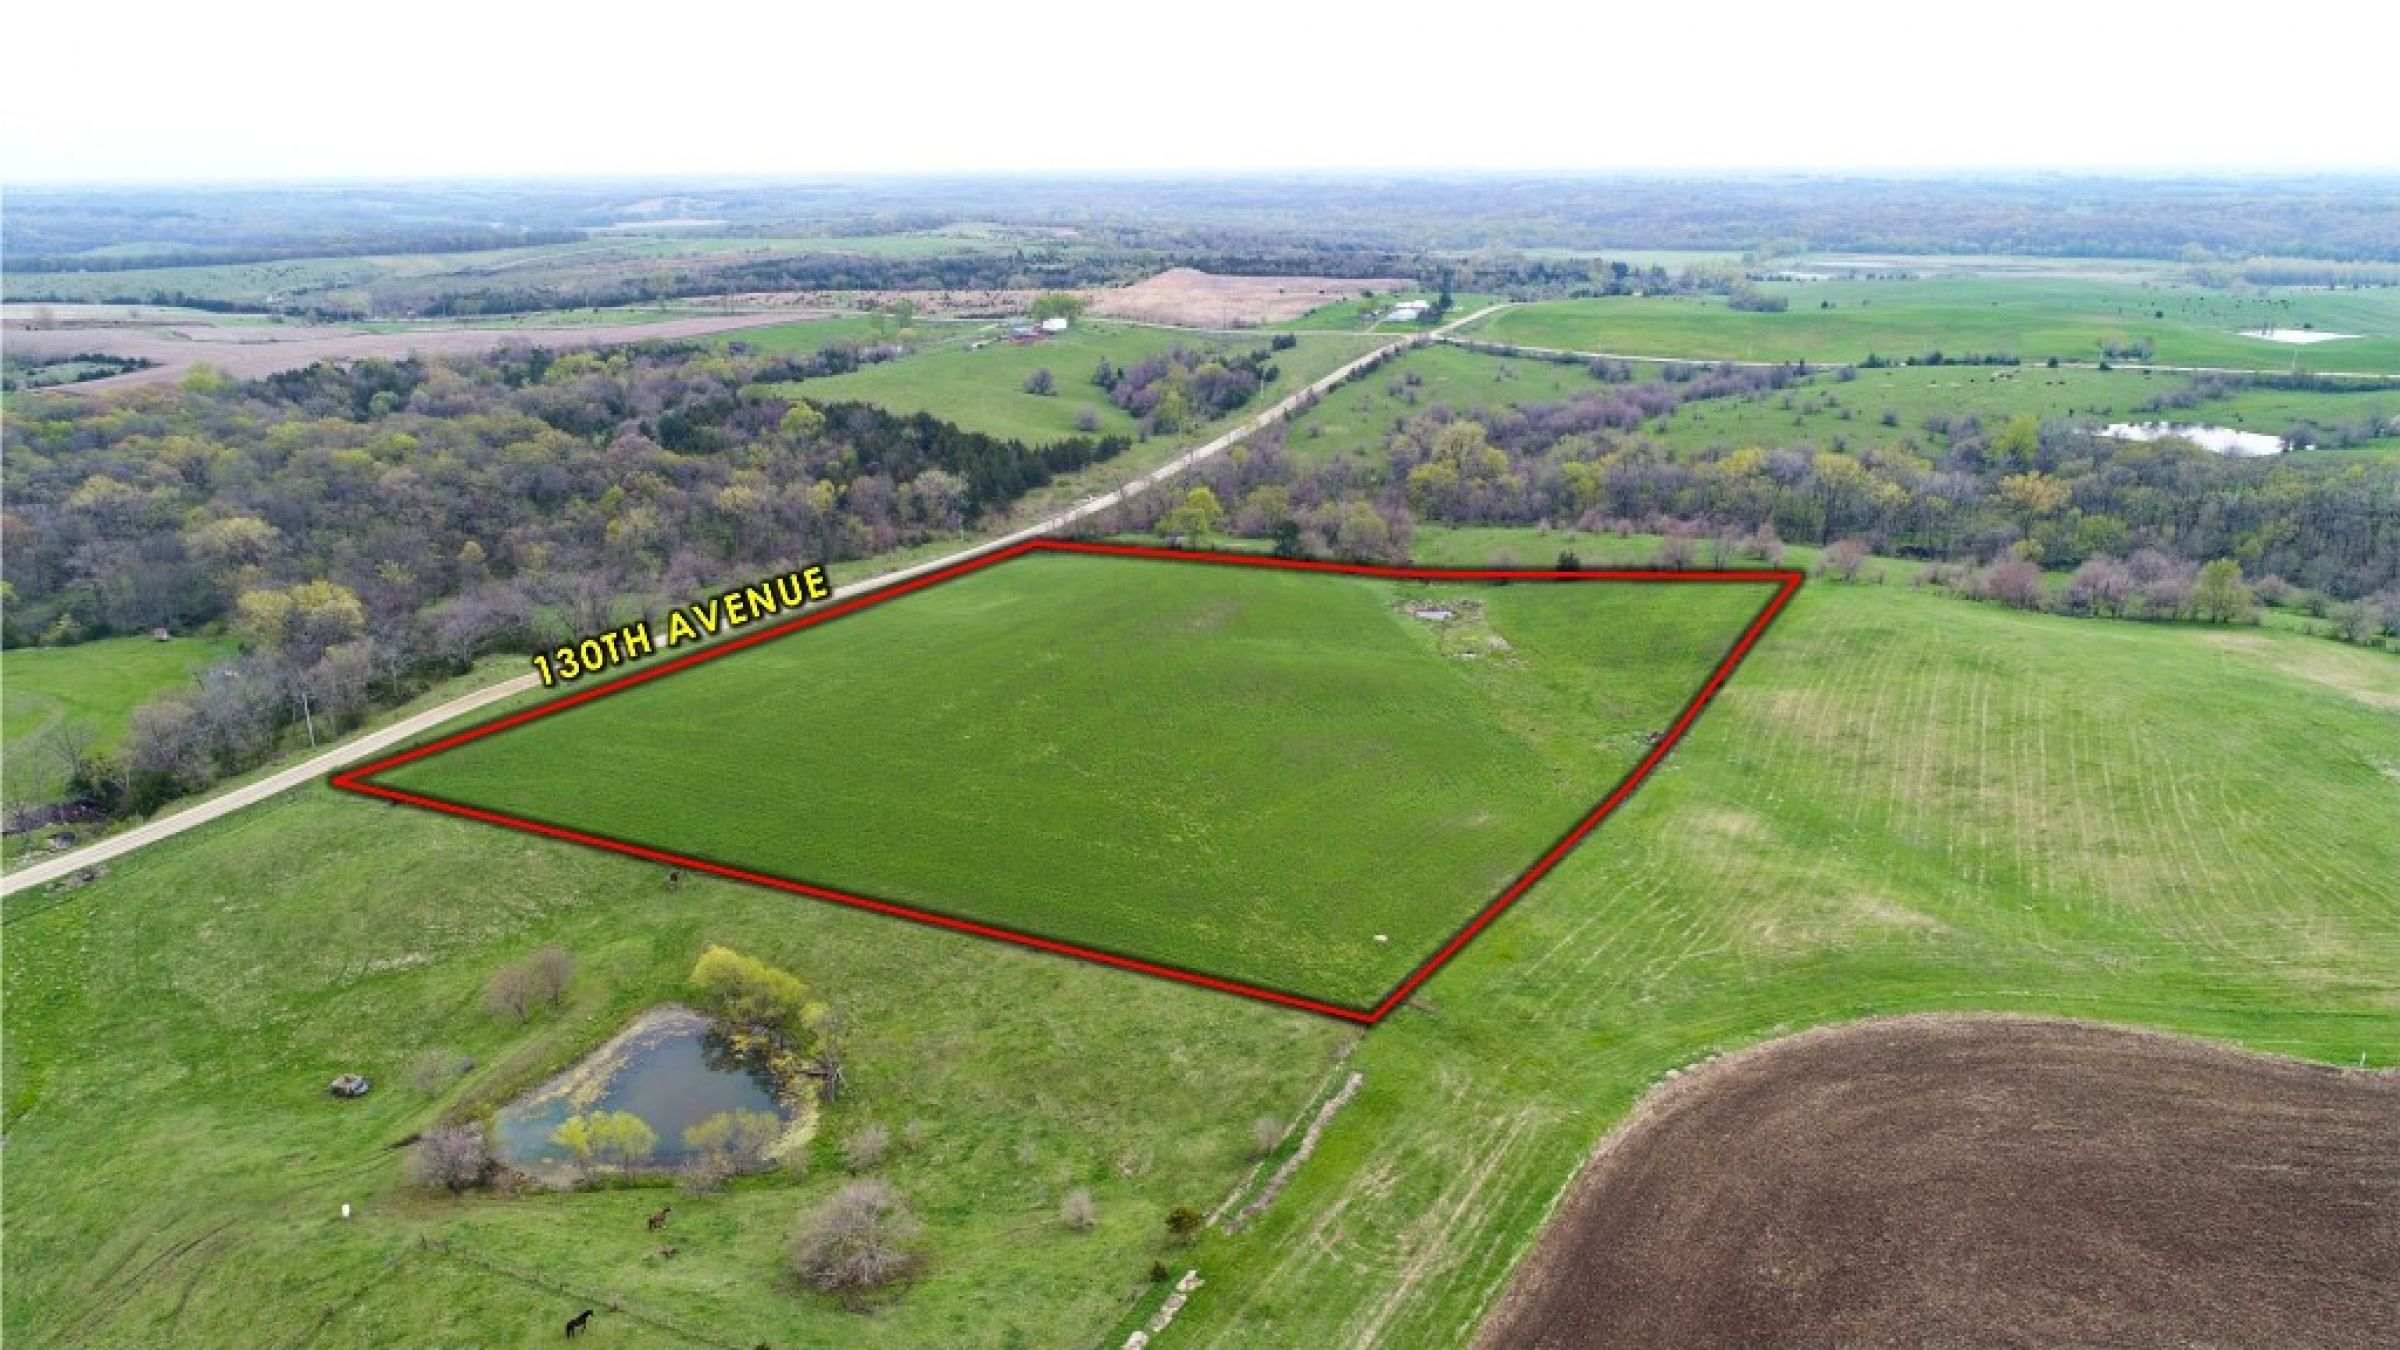 Peoples Company Land for Sale in Warren County, Iowa - 13 acres - 130th Ave. Lucas, IA 50151 - 14503